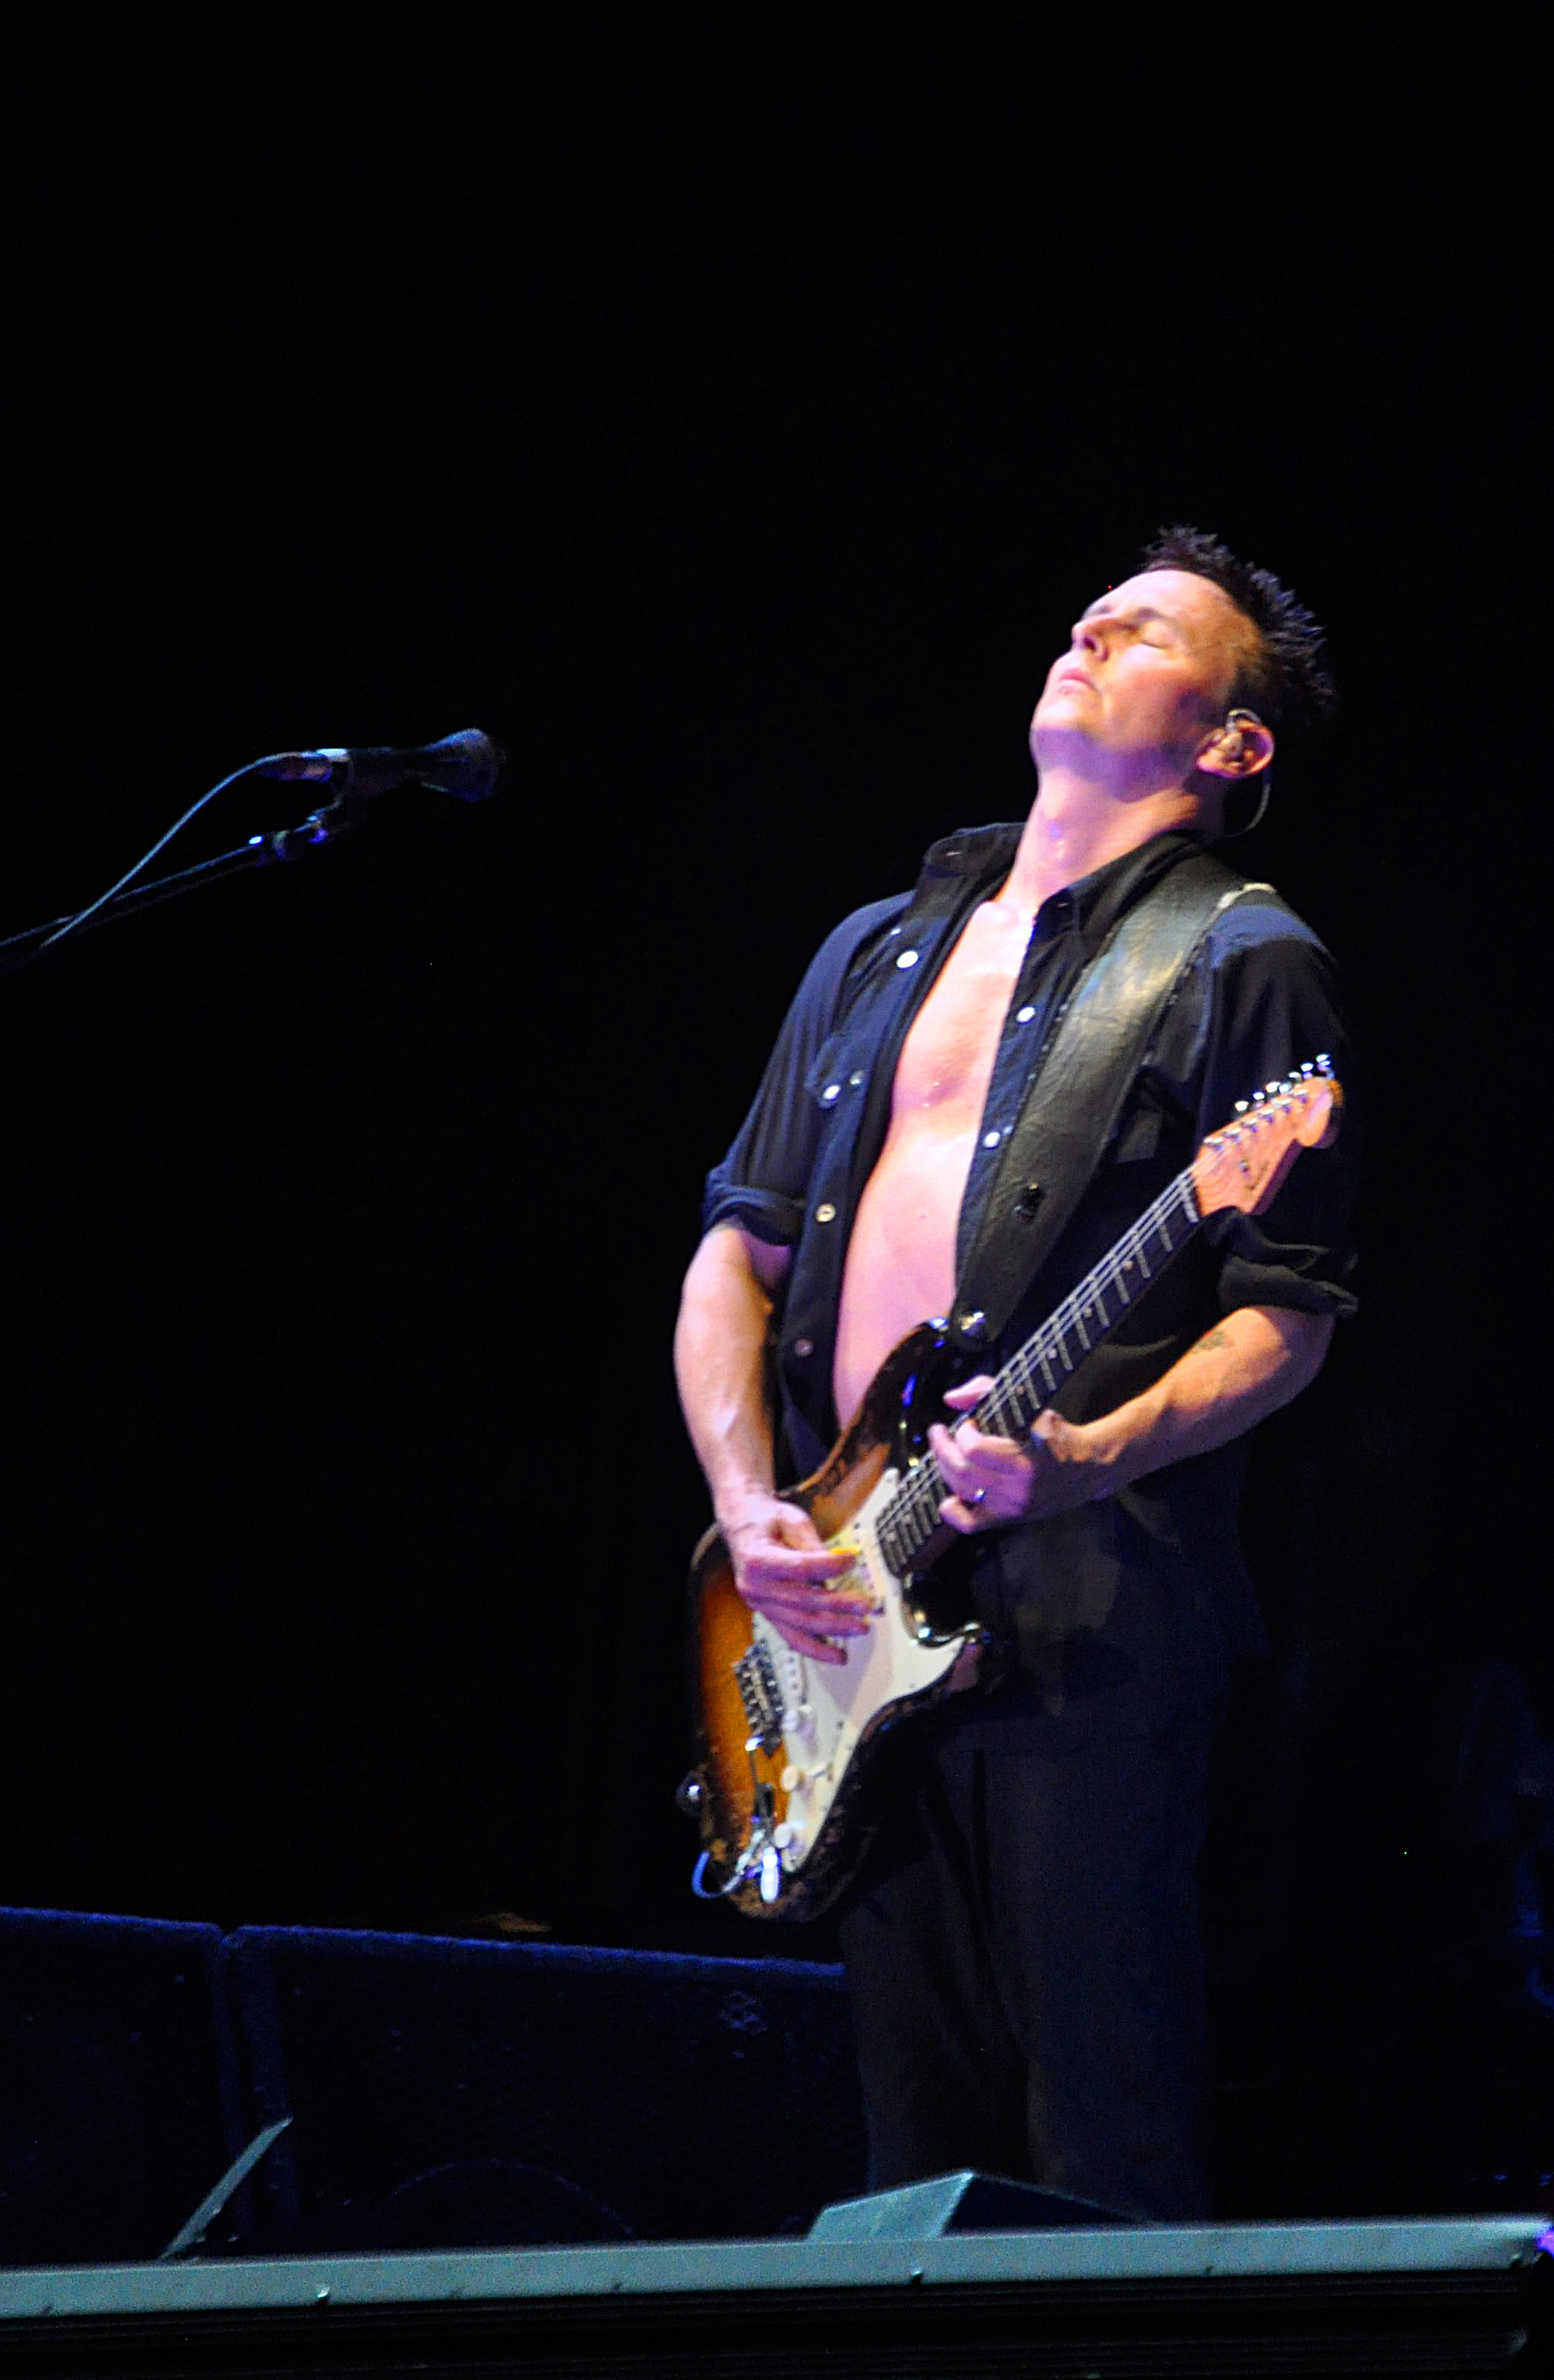 The 52-year old son of father (?) and mother(?) Mike McCready in 2018 photo. Mike McCready earned a  million dollar salary - leaving the net worth at 60 million in 2018